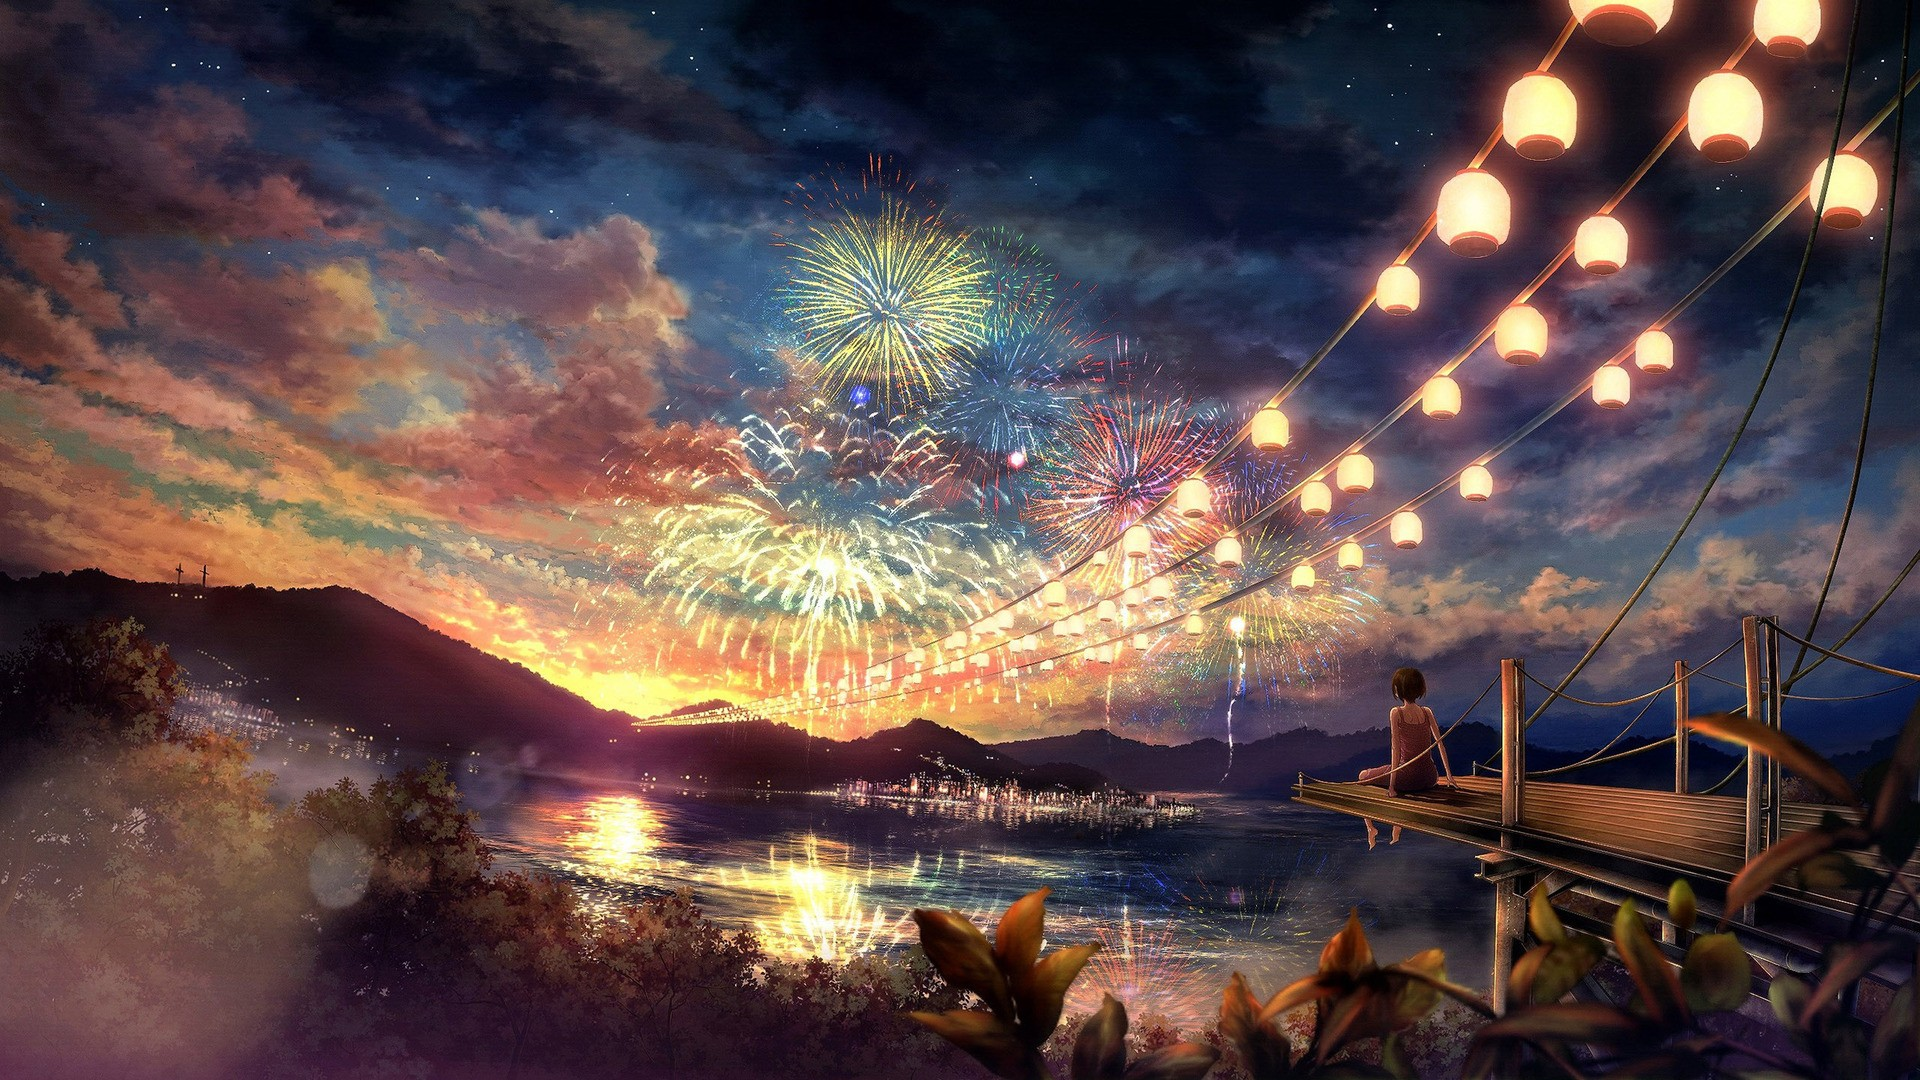 sunlight-colorful-women-night-anime-anime-girls-lake-reflection-sky-artwork-fireworks-evening-concept-art-dusk-screenshot-computer-wallpaper-230115